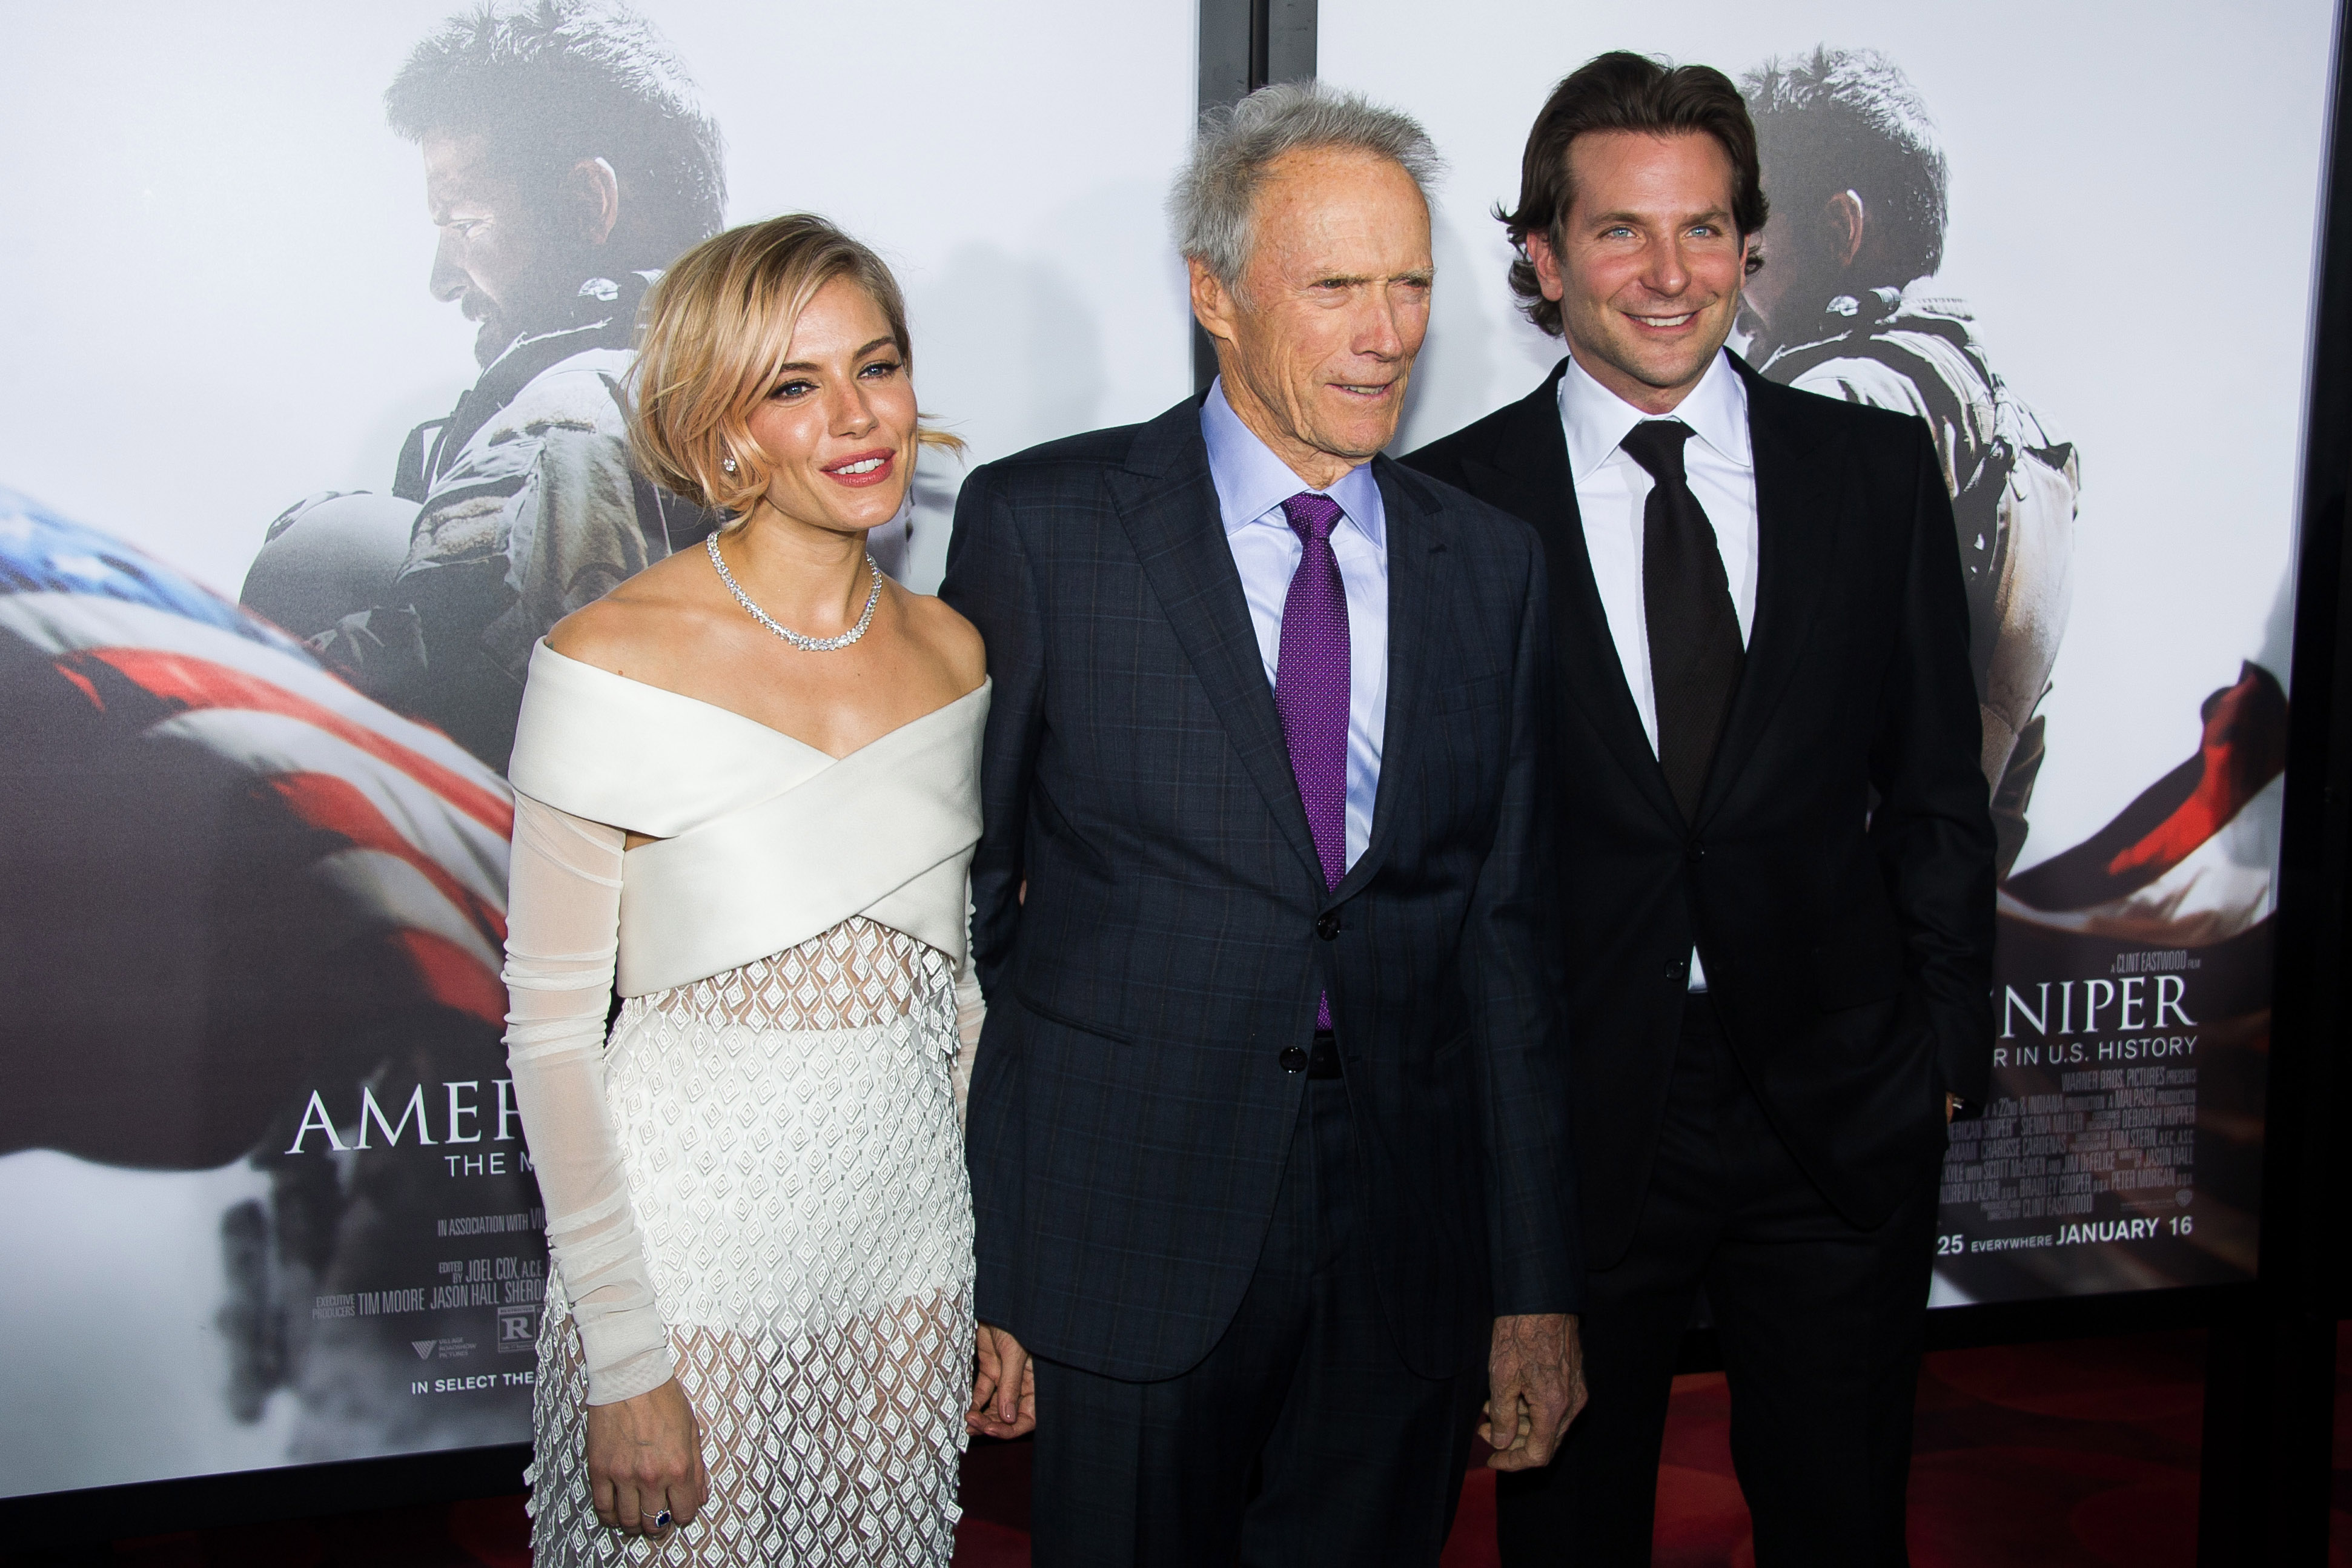 Sienna Miller, from left, Clint Eastwood and Bradley Cooper attend the  American Sniper  premiere on Monday, Dec. 15, 2014 in New York. (Photo by Charles Sykes/Invision/AP)